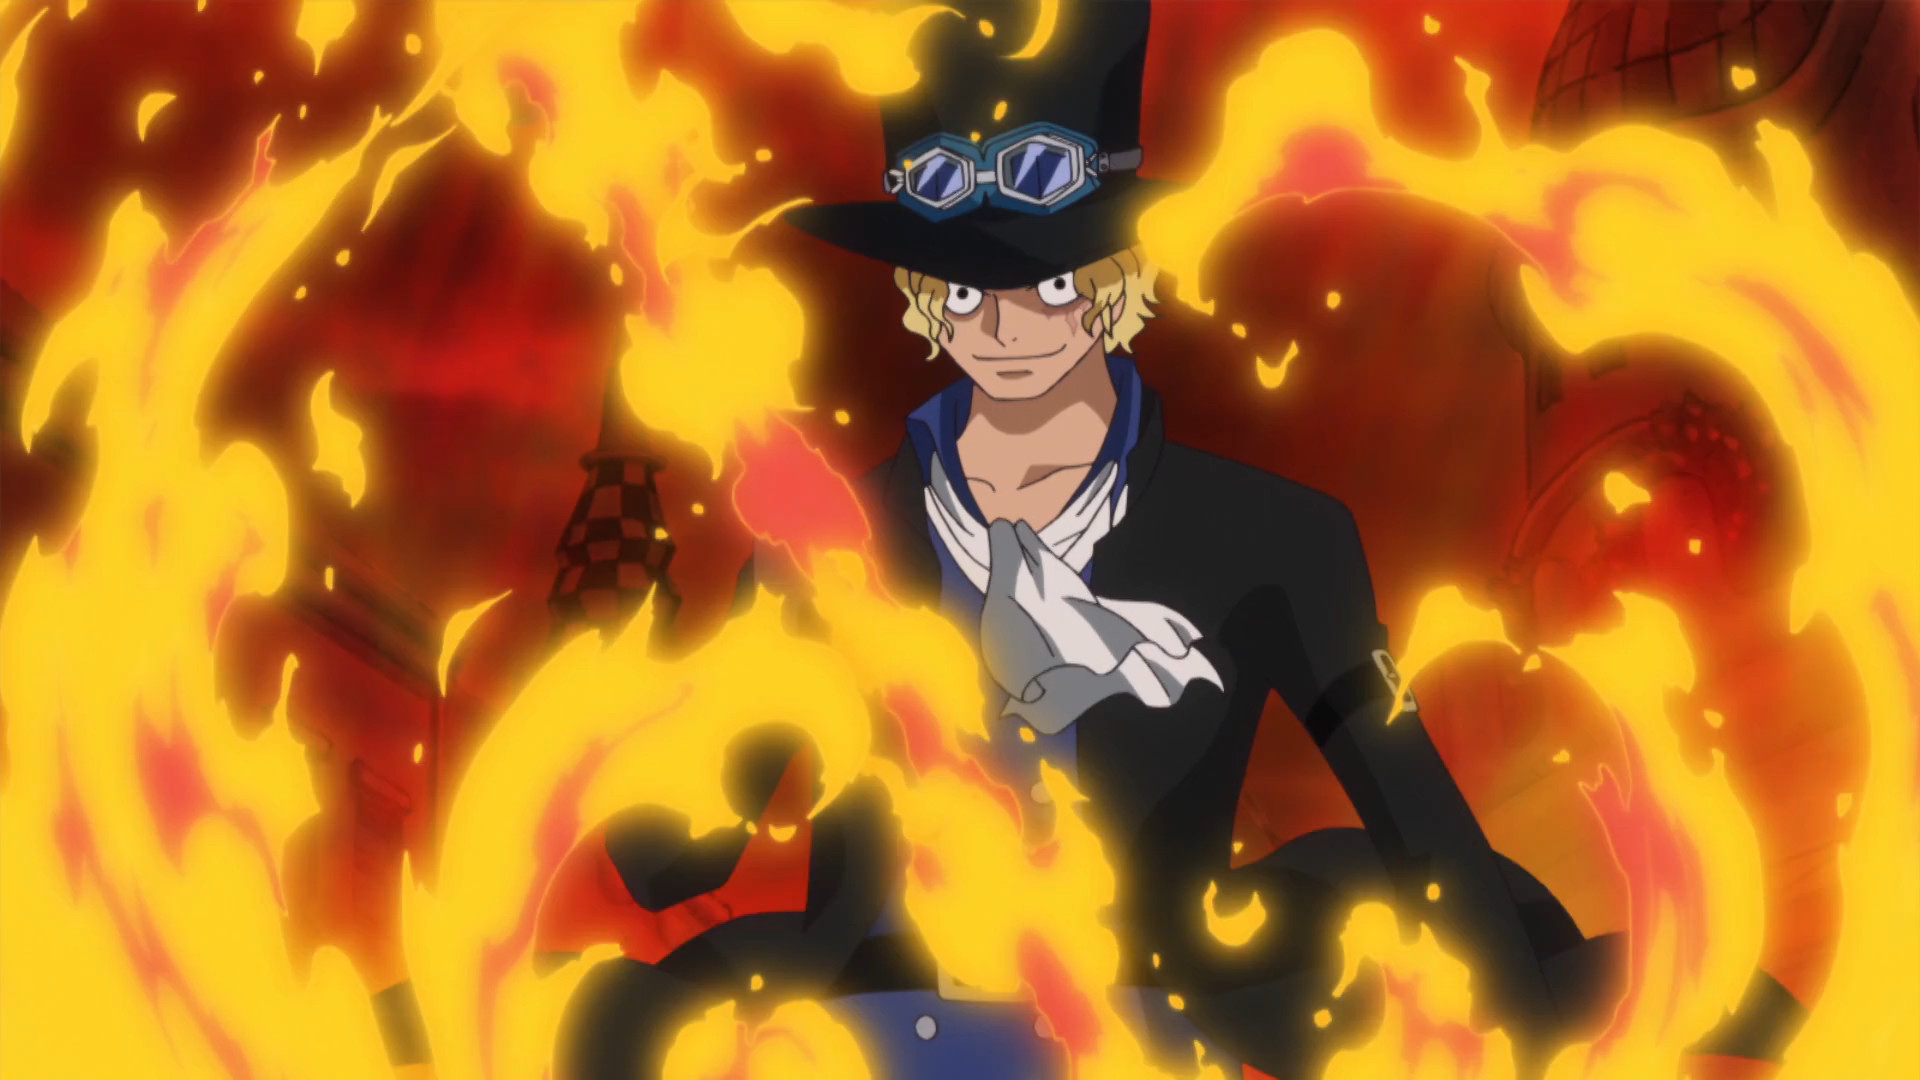 Ace sabo luffy one piece wallpaper. One Piece Luffy and Ace Wallpapers (67+ pictures)